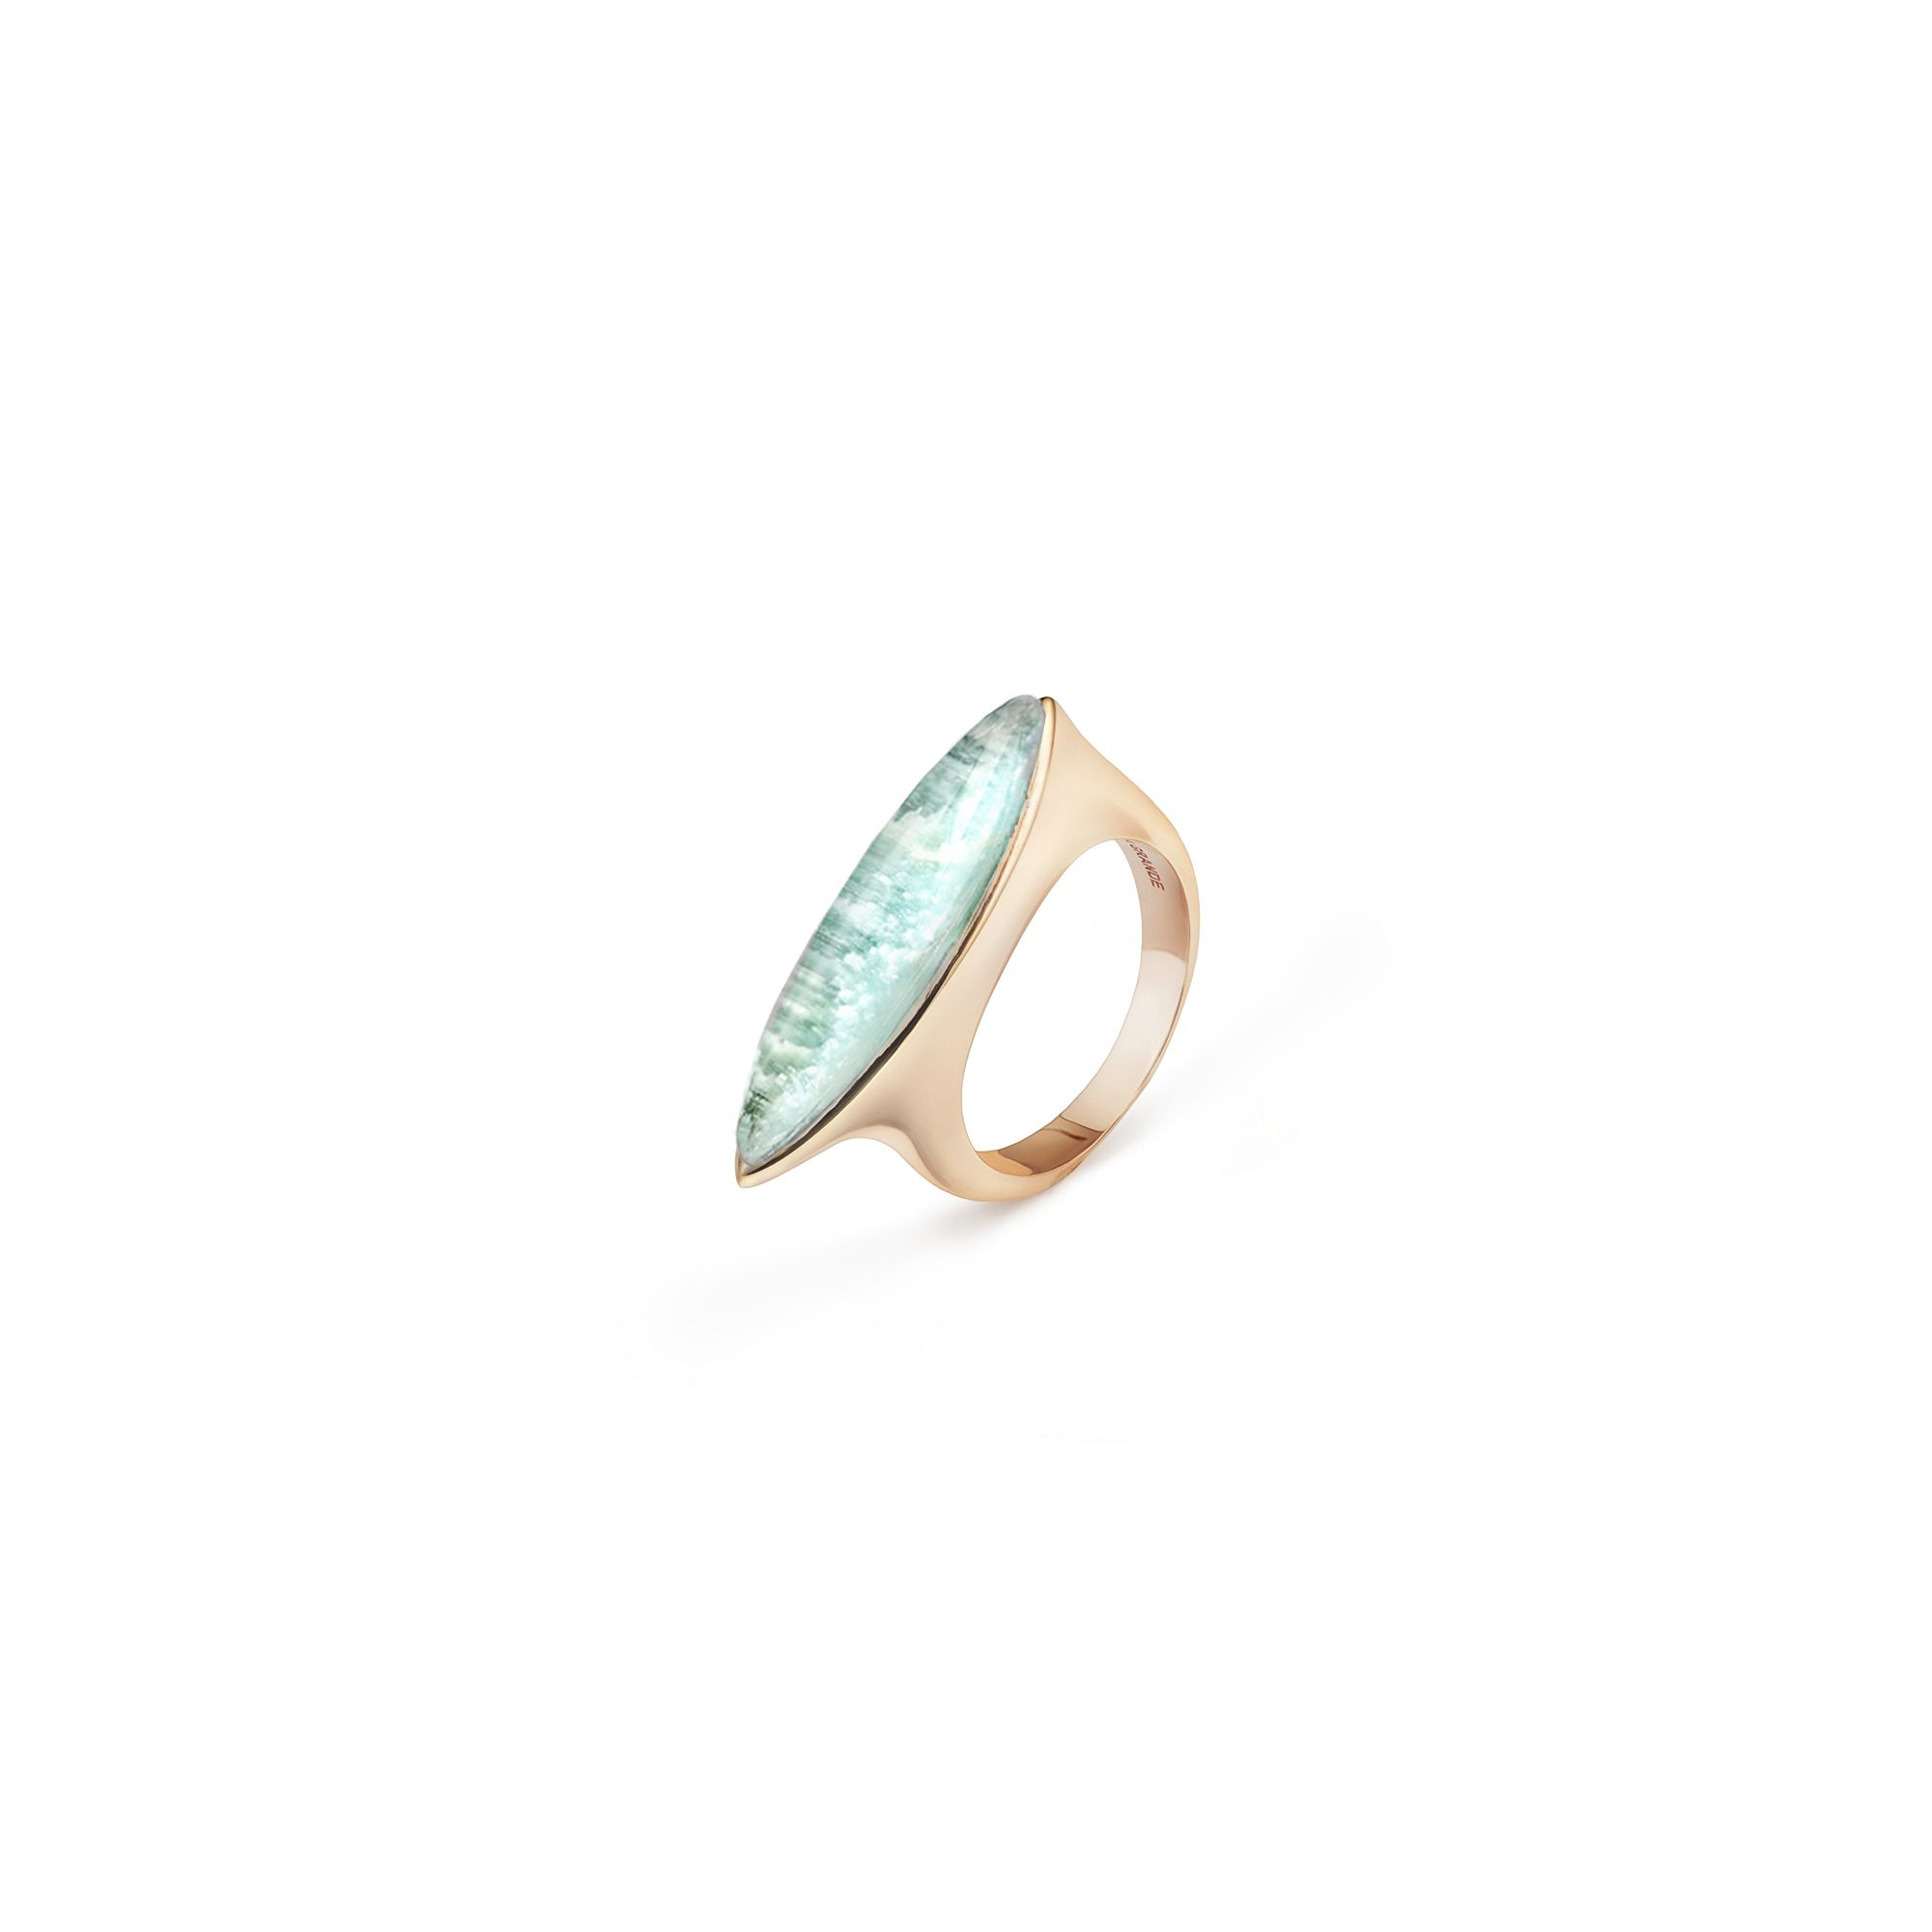 Pink gold 'Navetta' ring with amazonite Rose gold ring with 'doublet' stone